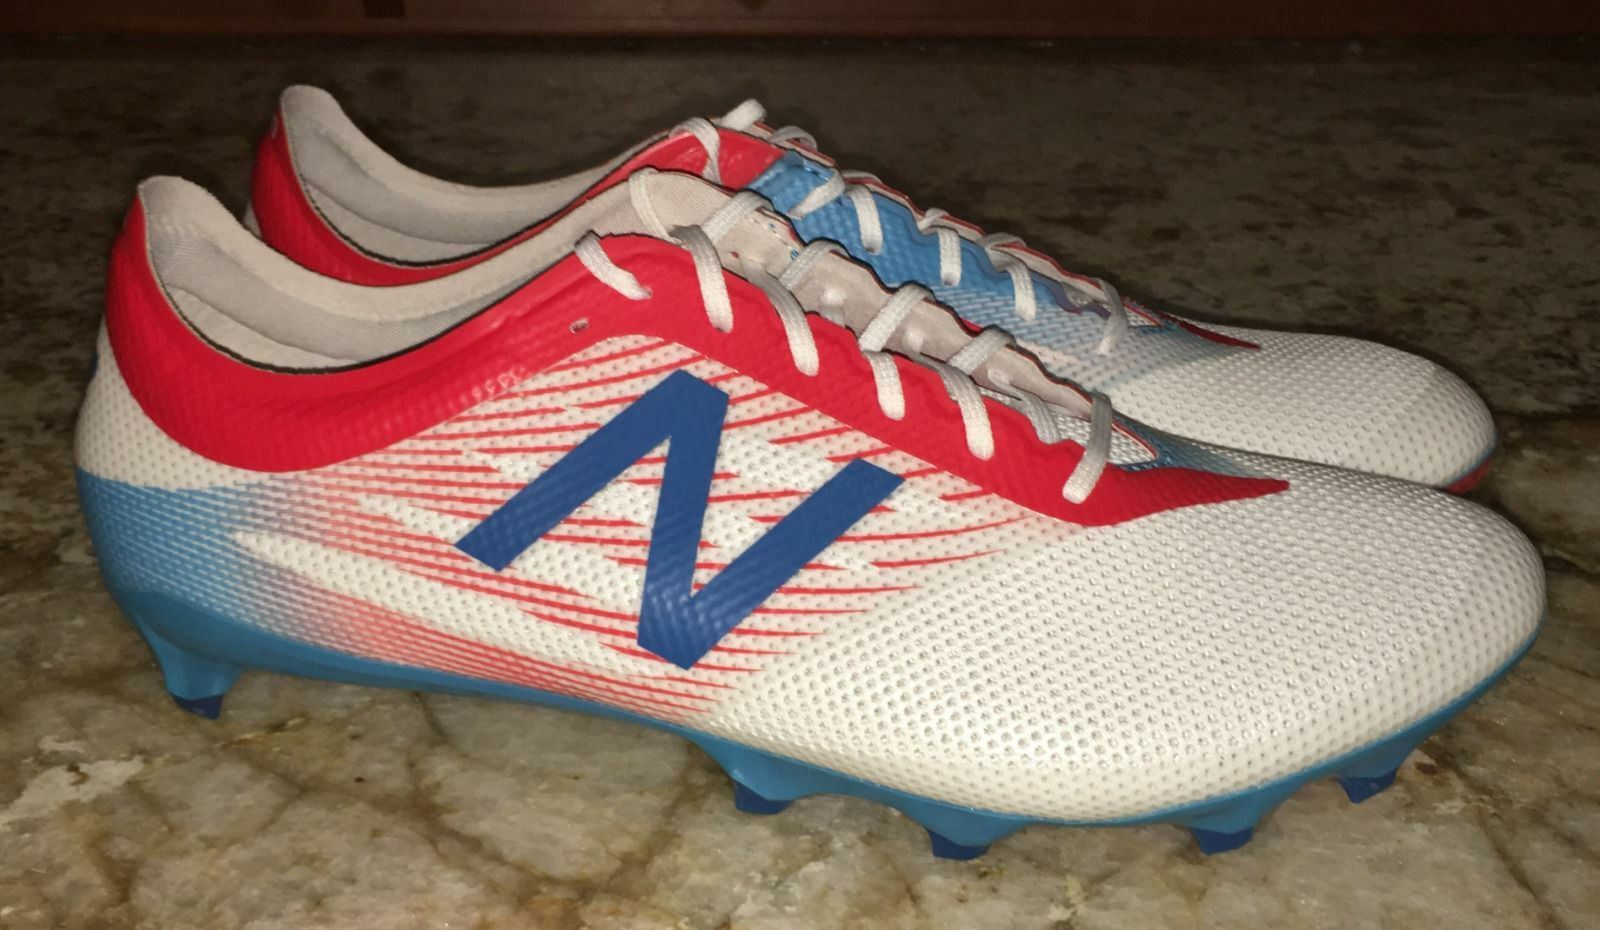 NEW BALANCE Furon 2.0 Pro FG RevLite White Blue Red Soccer Cleats NEW Mens Sz 11